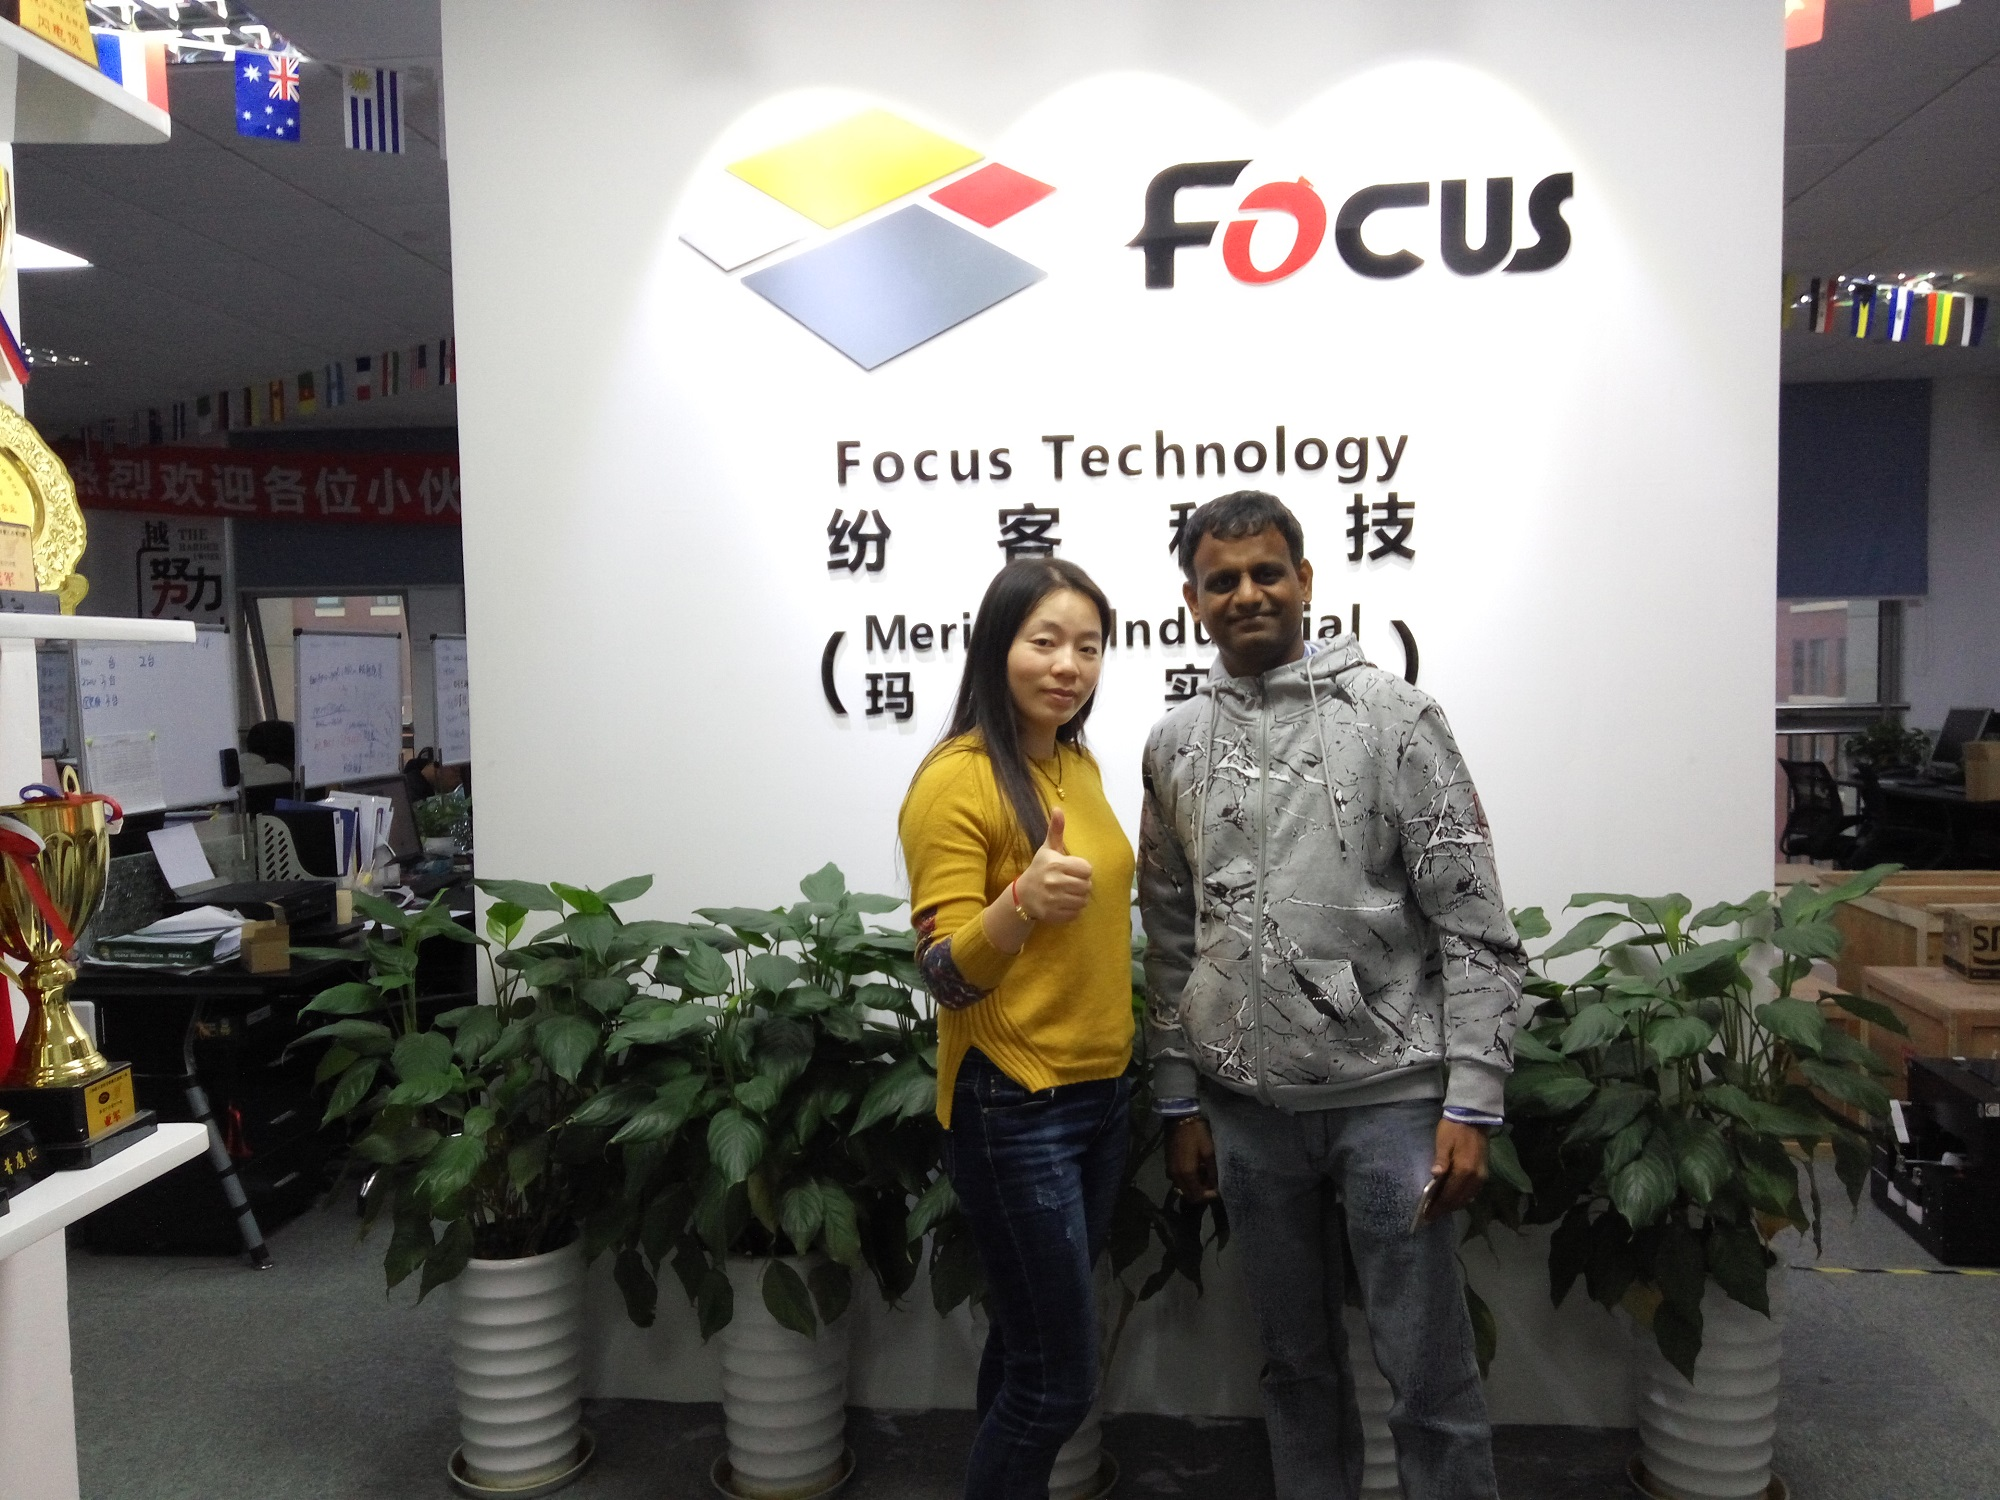 Focus Digital DTG printer and uv printer interview from customer